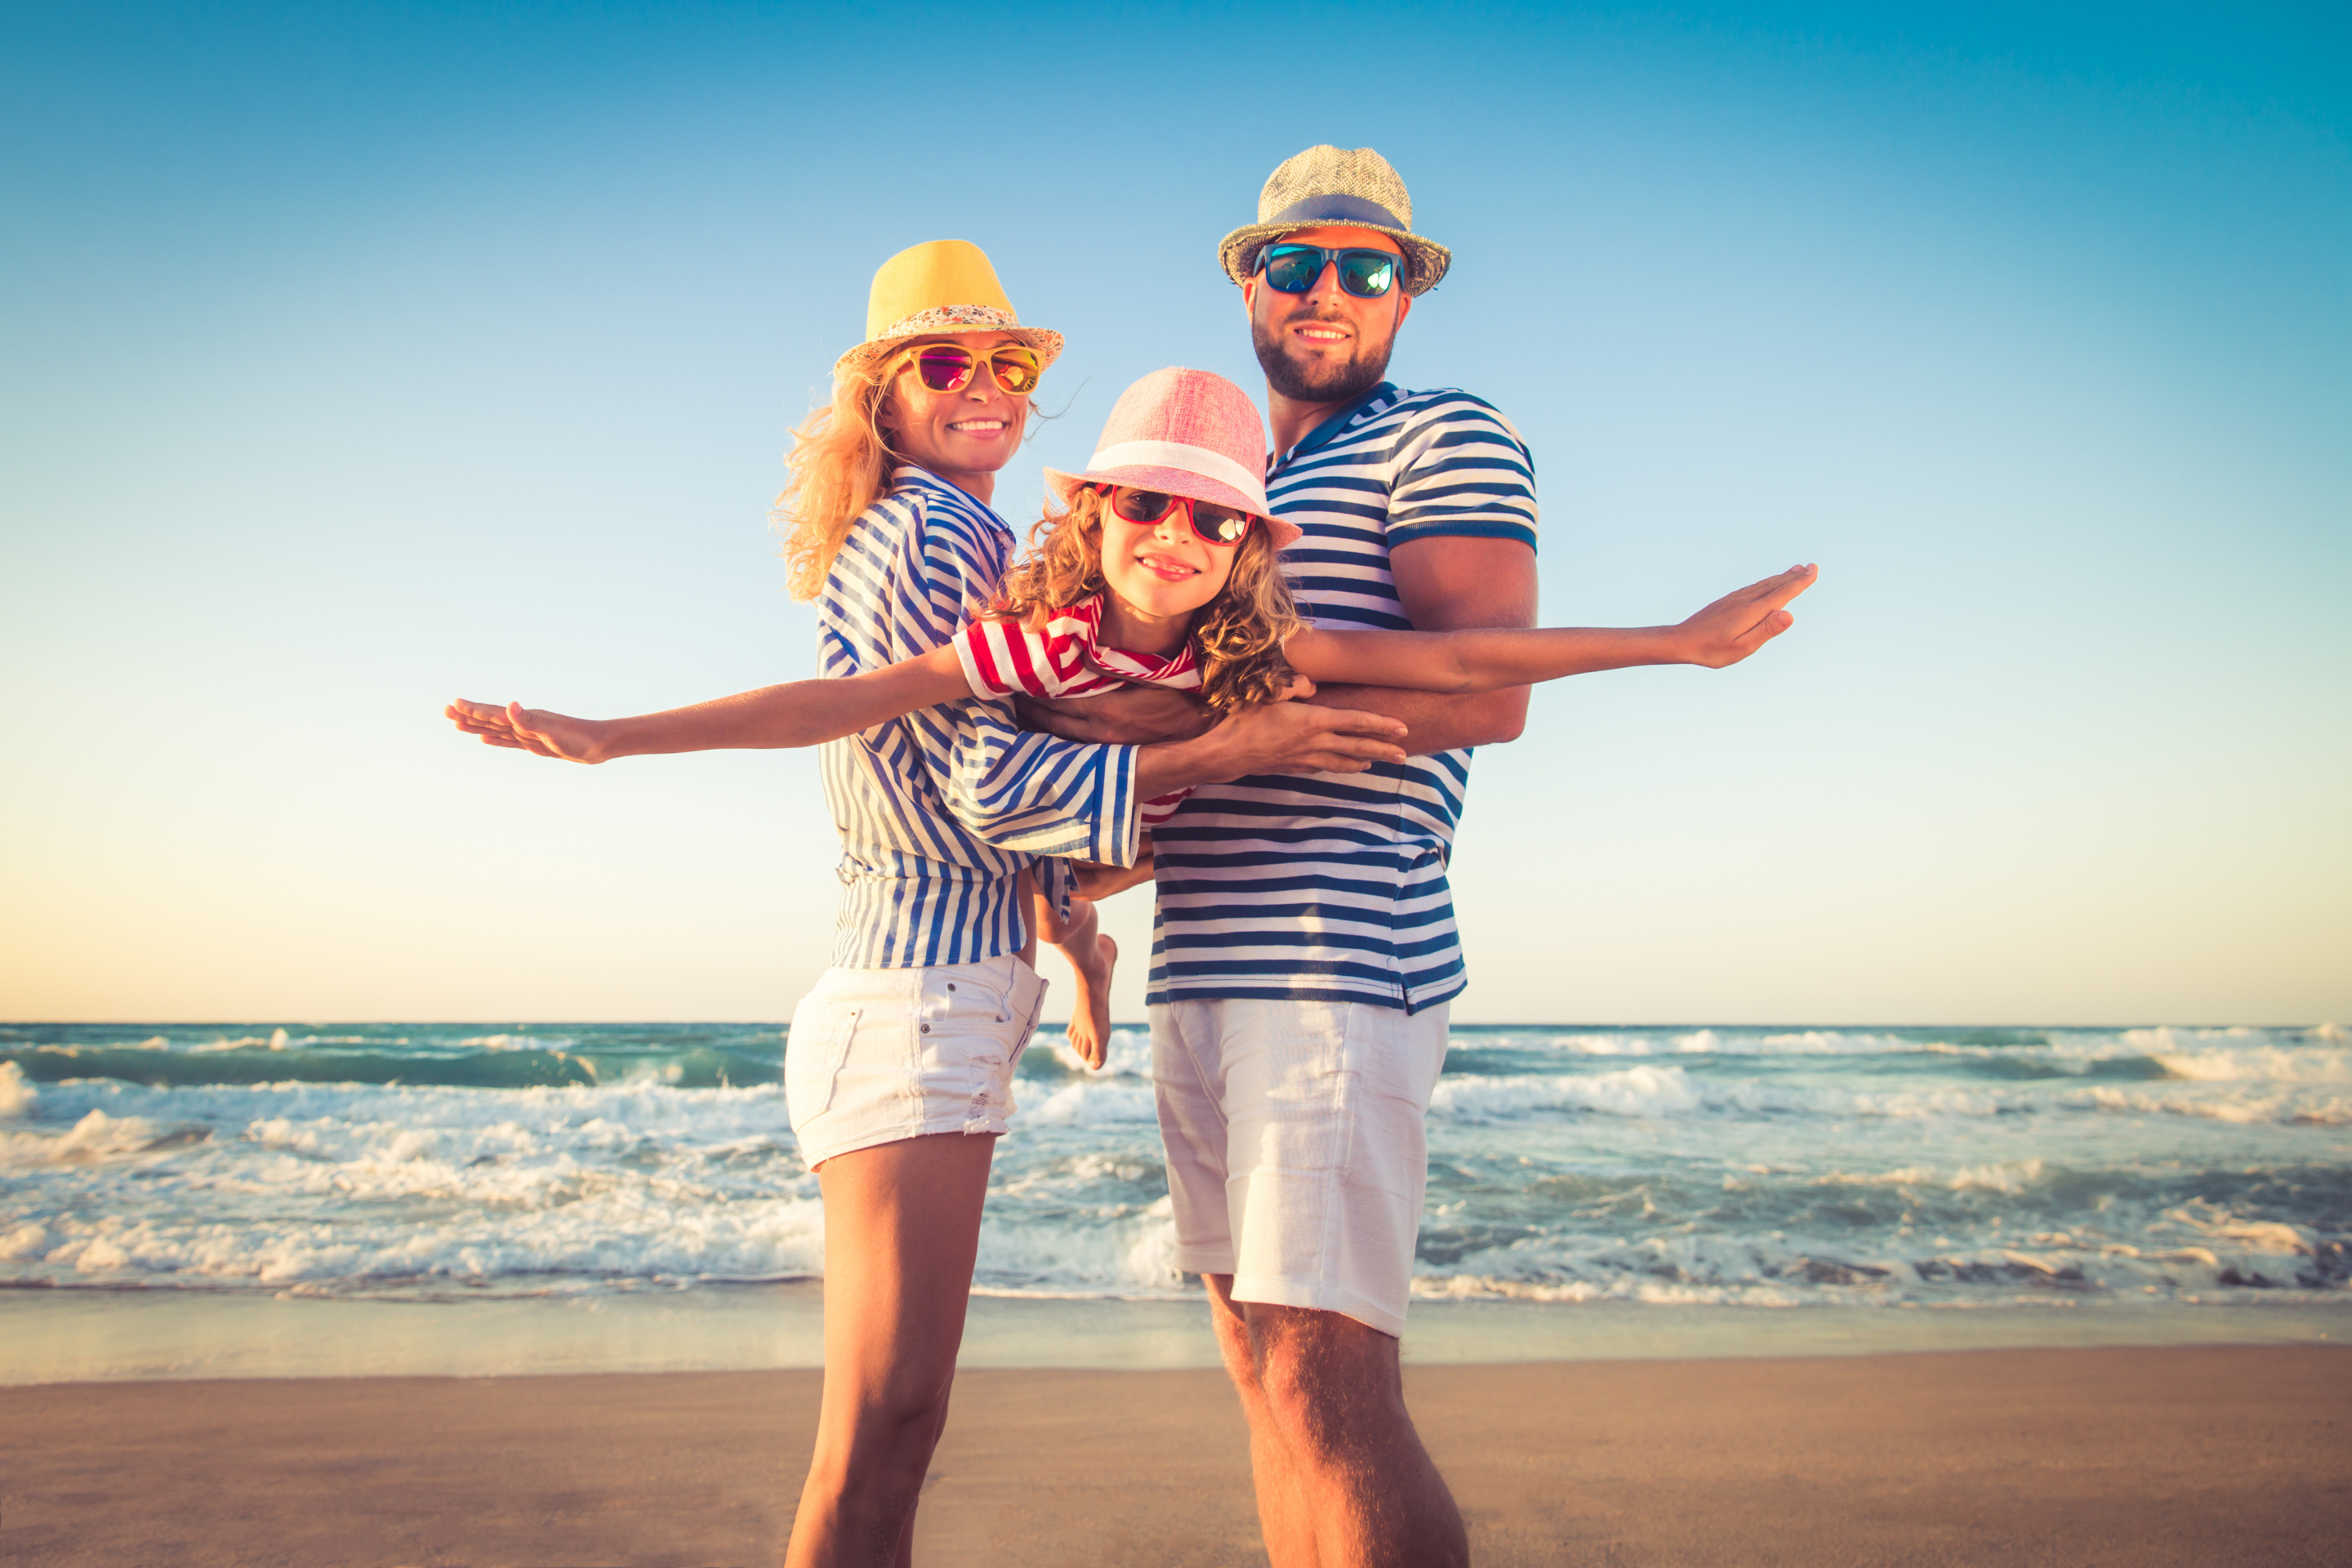 Happy family on the beach. People having fun on summer vacation_shutterstock_644382739.jpg